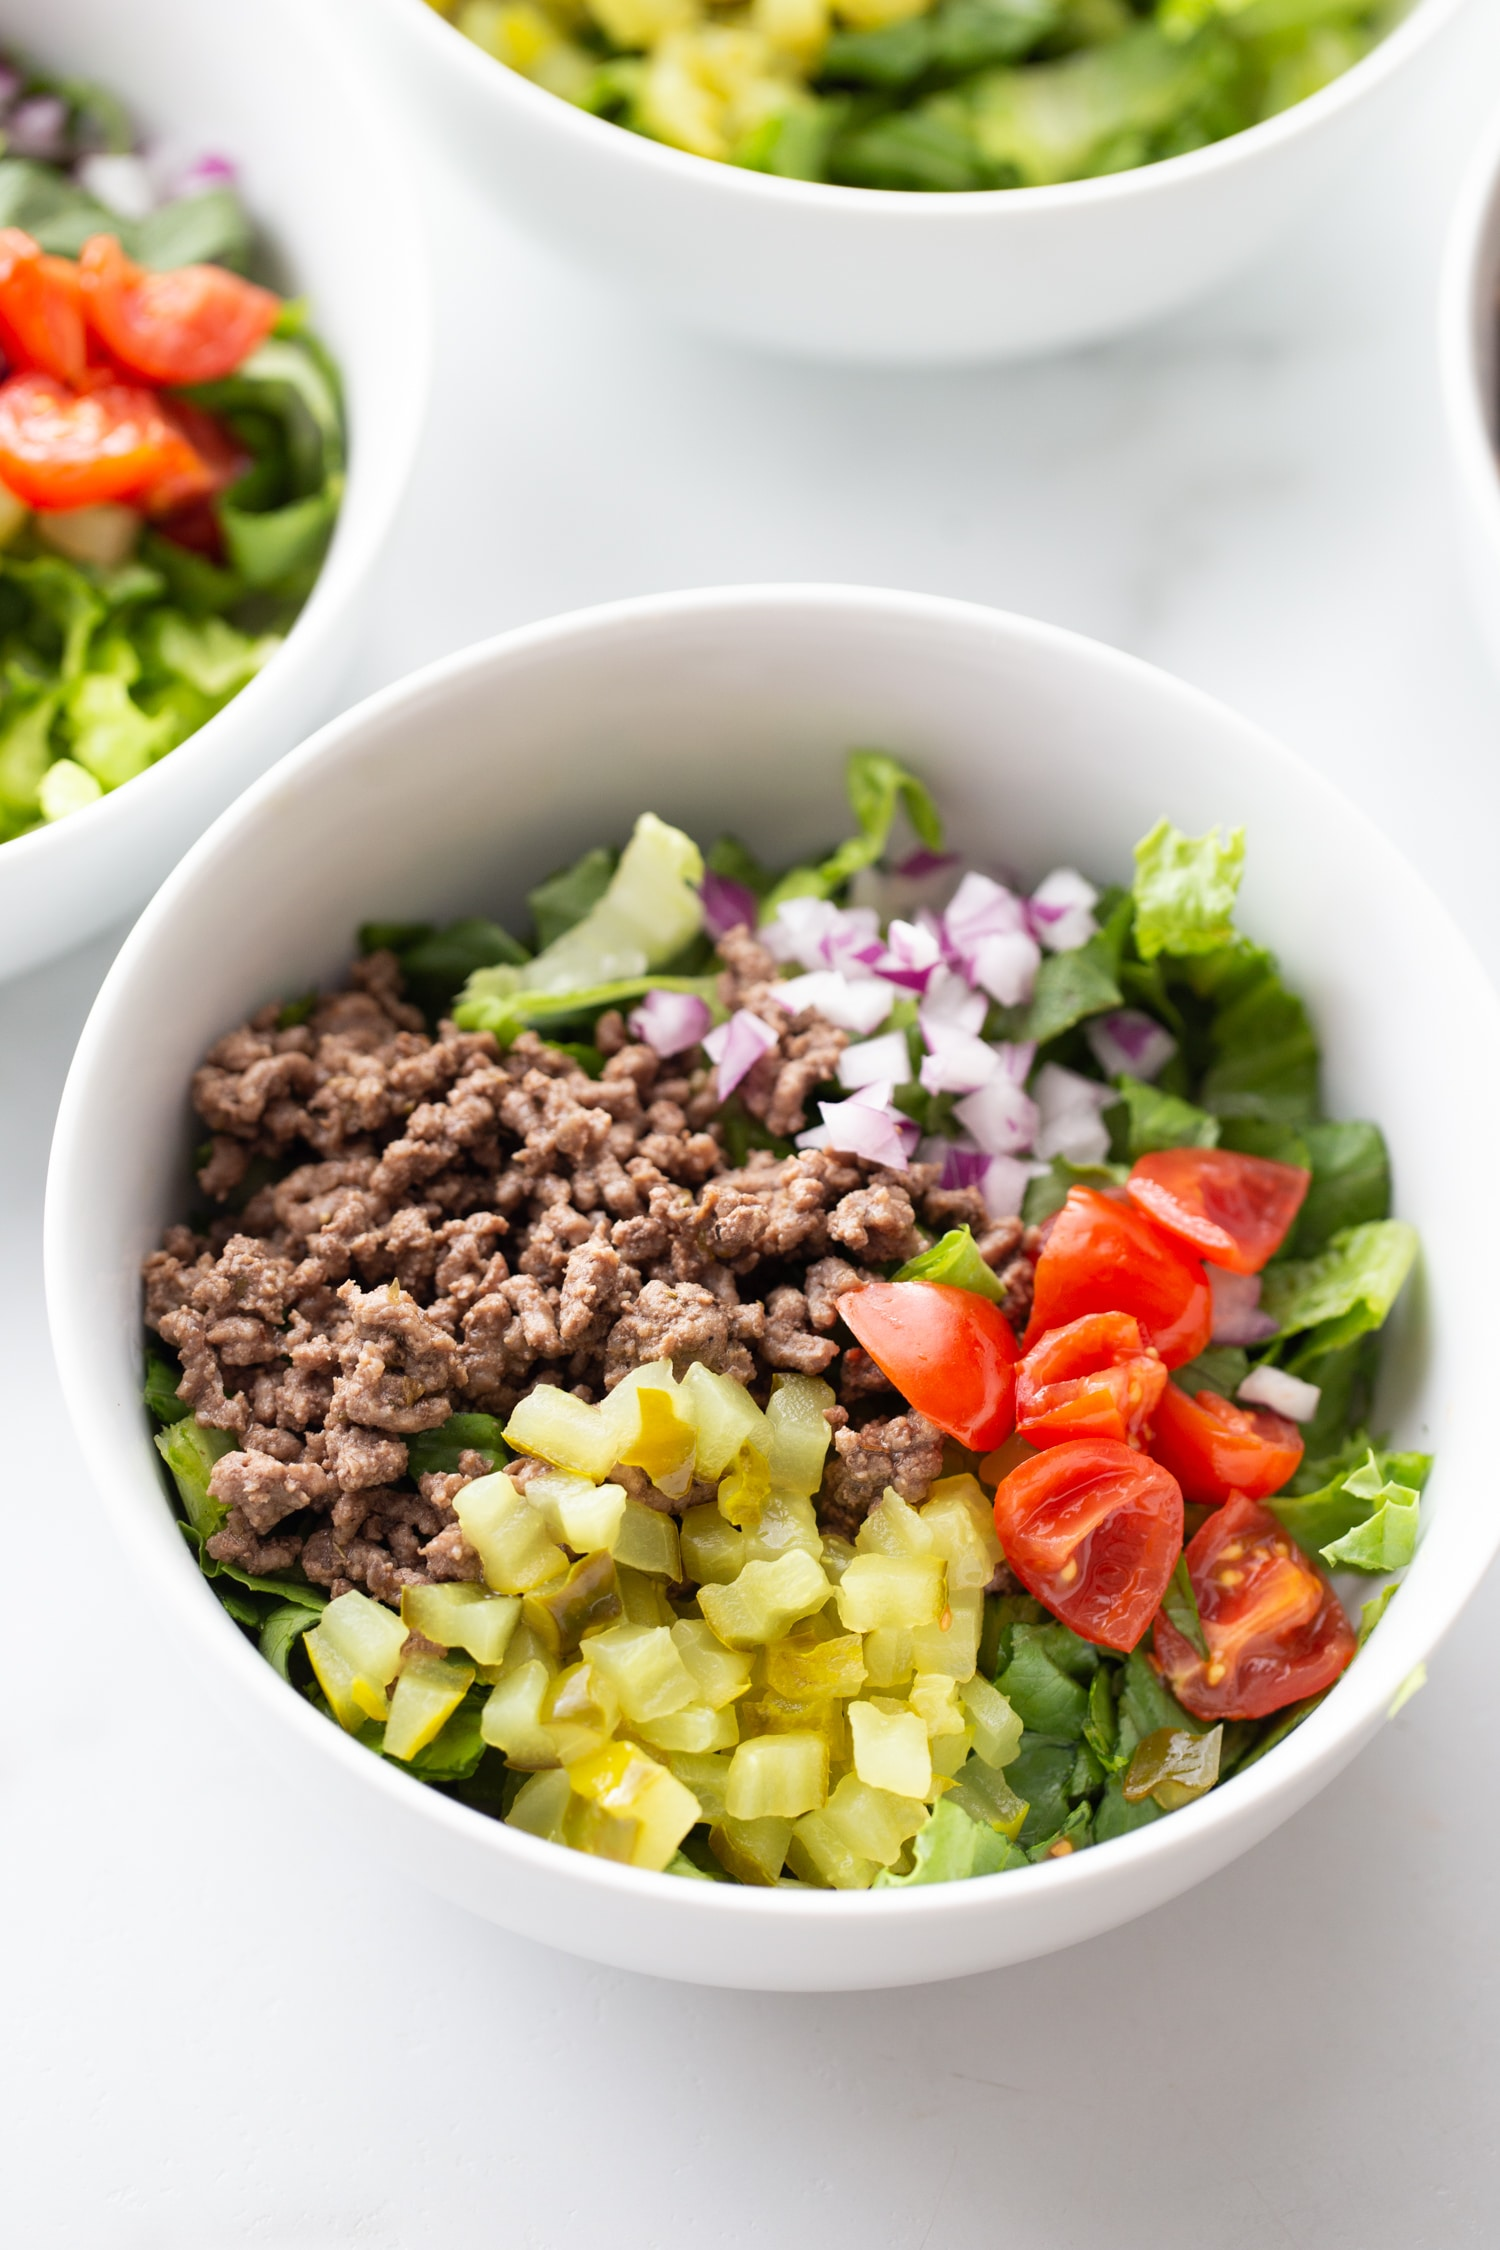 big mac ground beef, tomatoes, onions and peppers in a bowl on top of lettuce